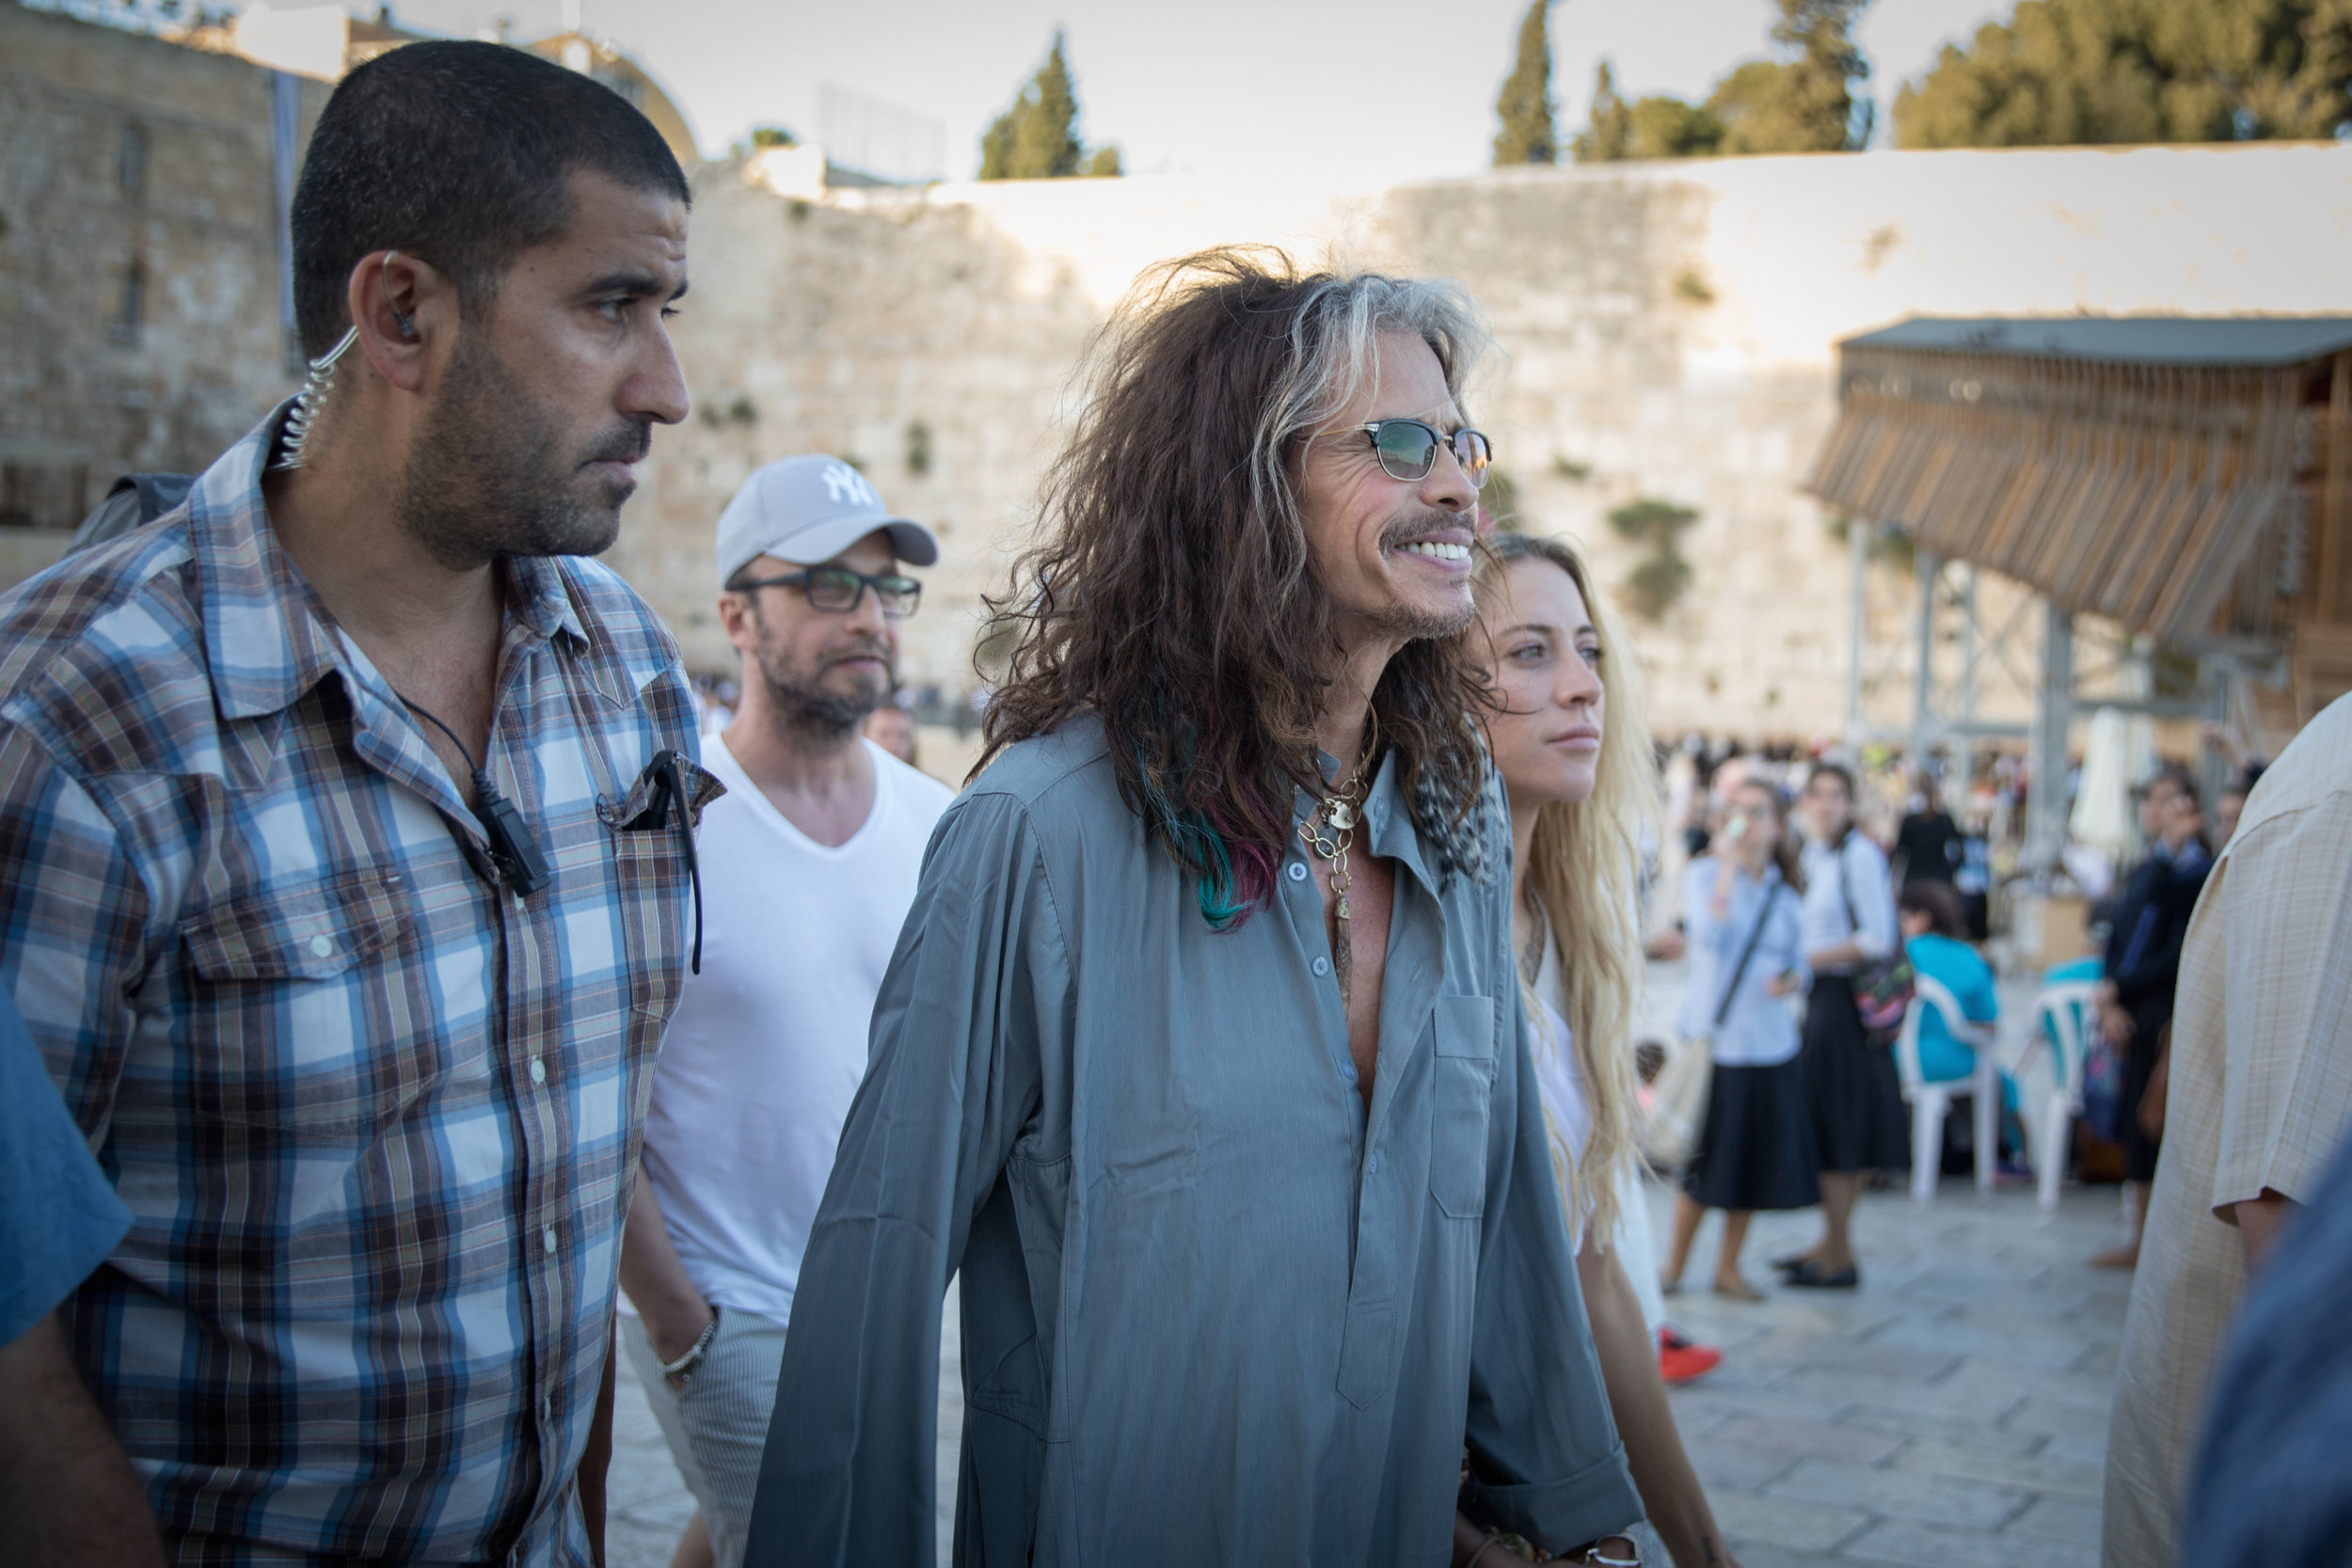 Aerosmith lead singer Steven Tyler (center) visits the Western Wall in Jerusalem, May 15, 2017. Credit: Rob Ghost/Flash90.